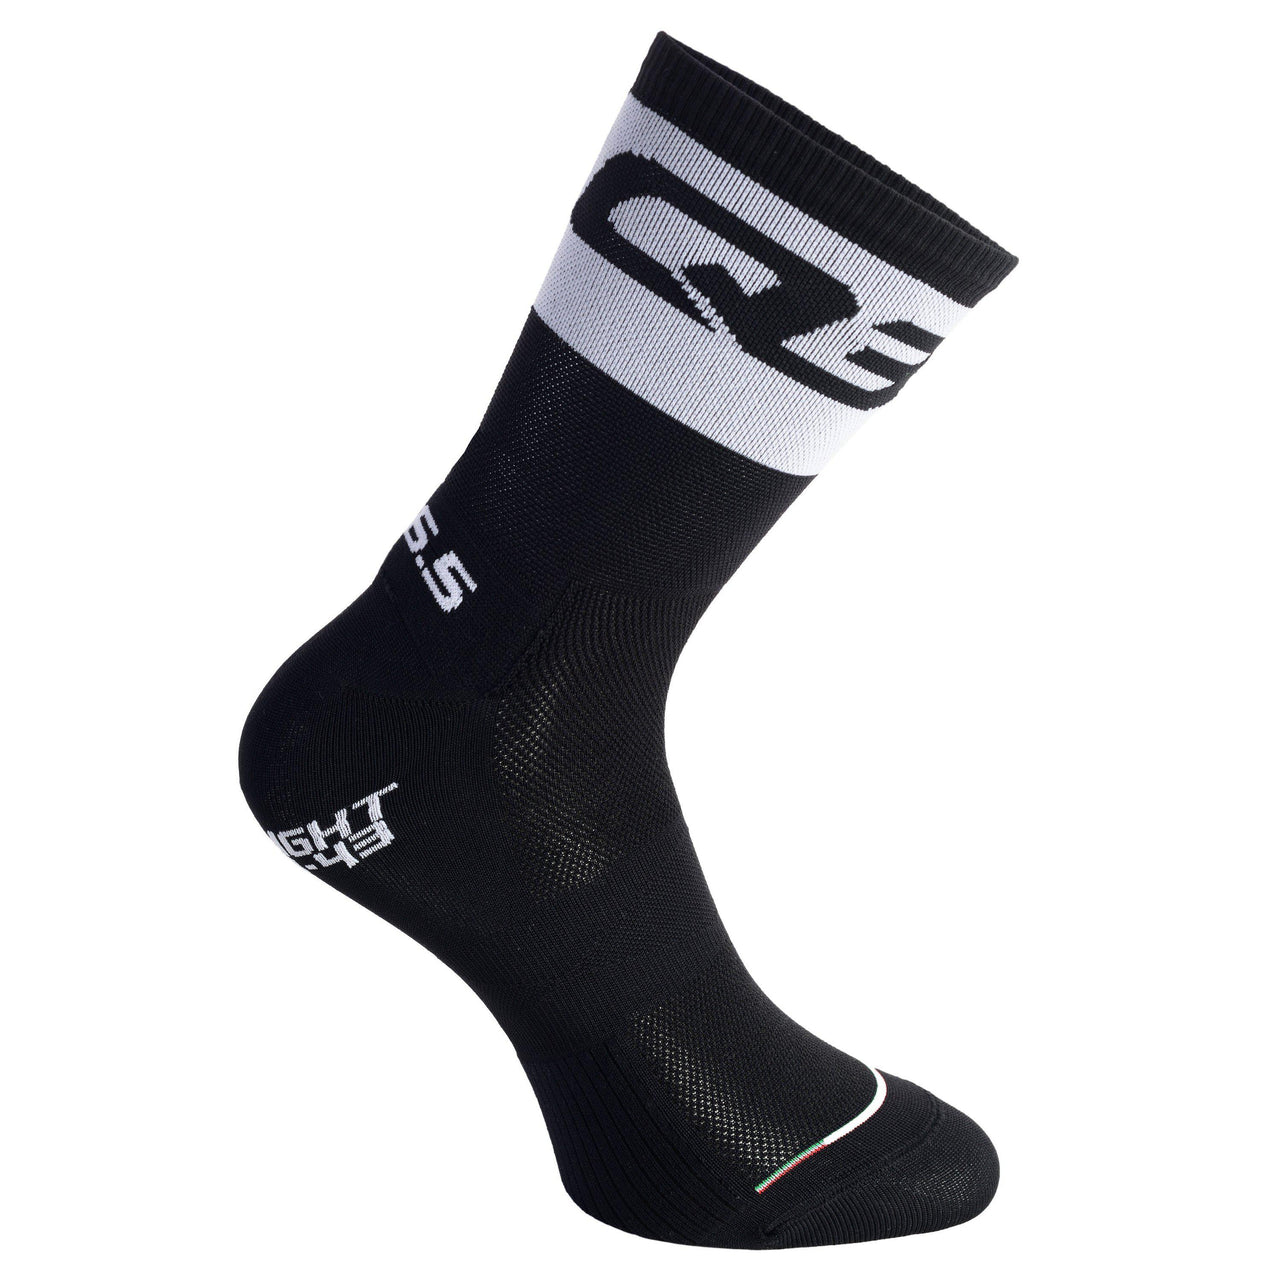 Calcetines Q36.5 ULTRALIGHT Negro/Blanco